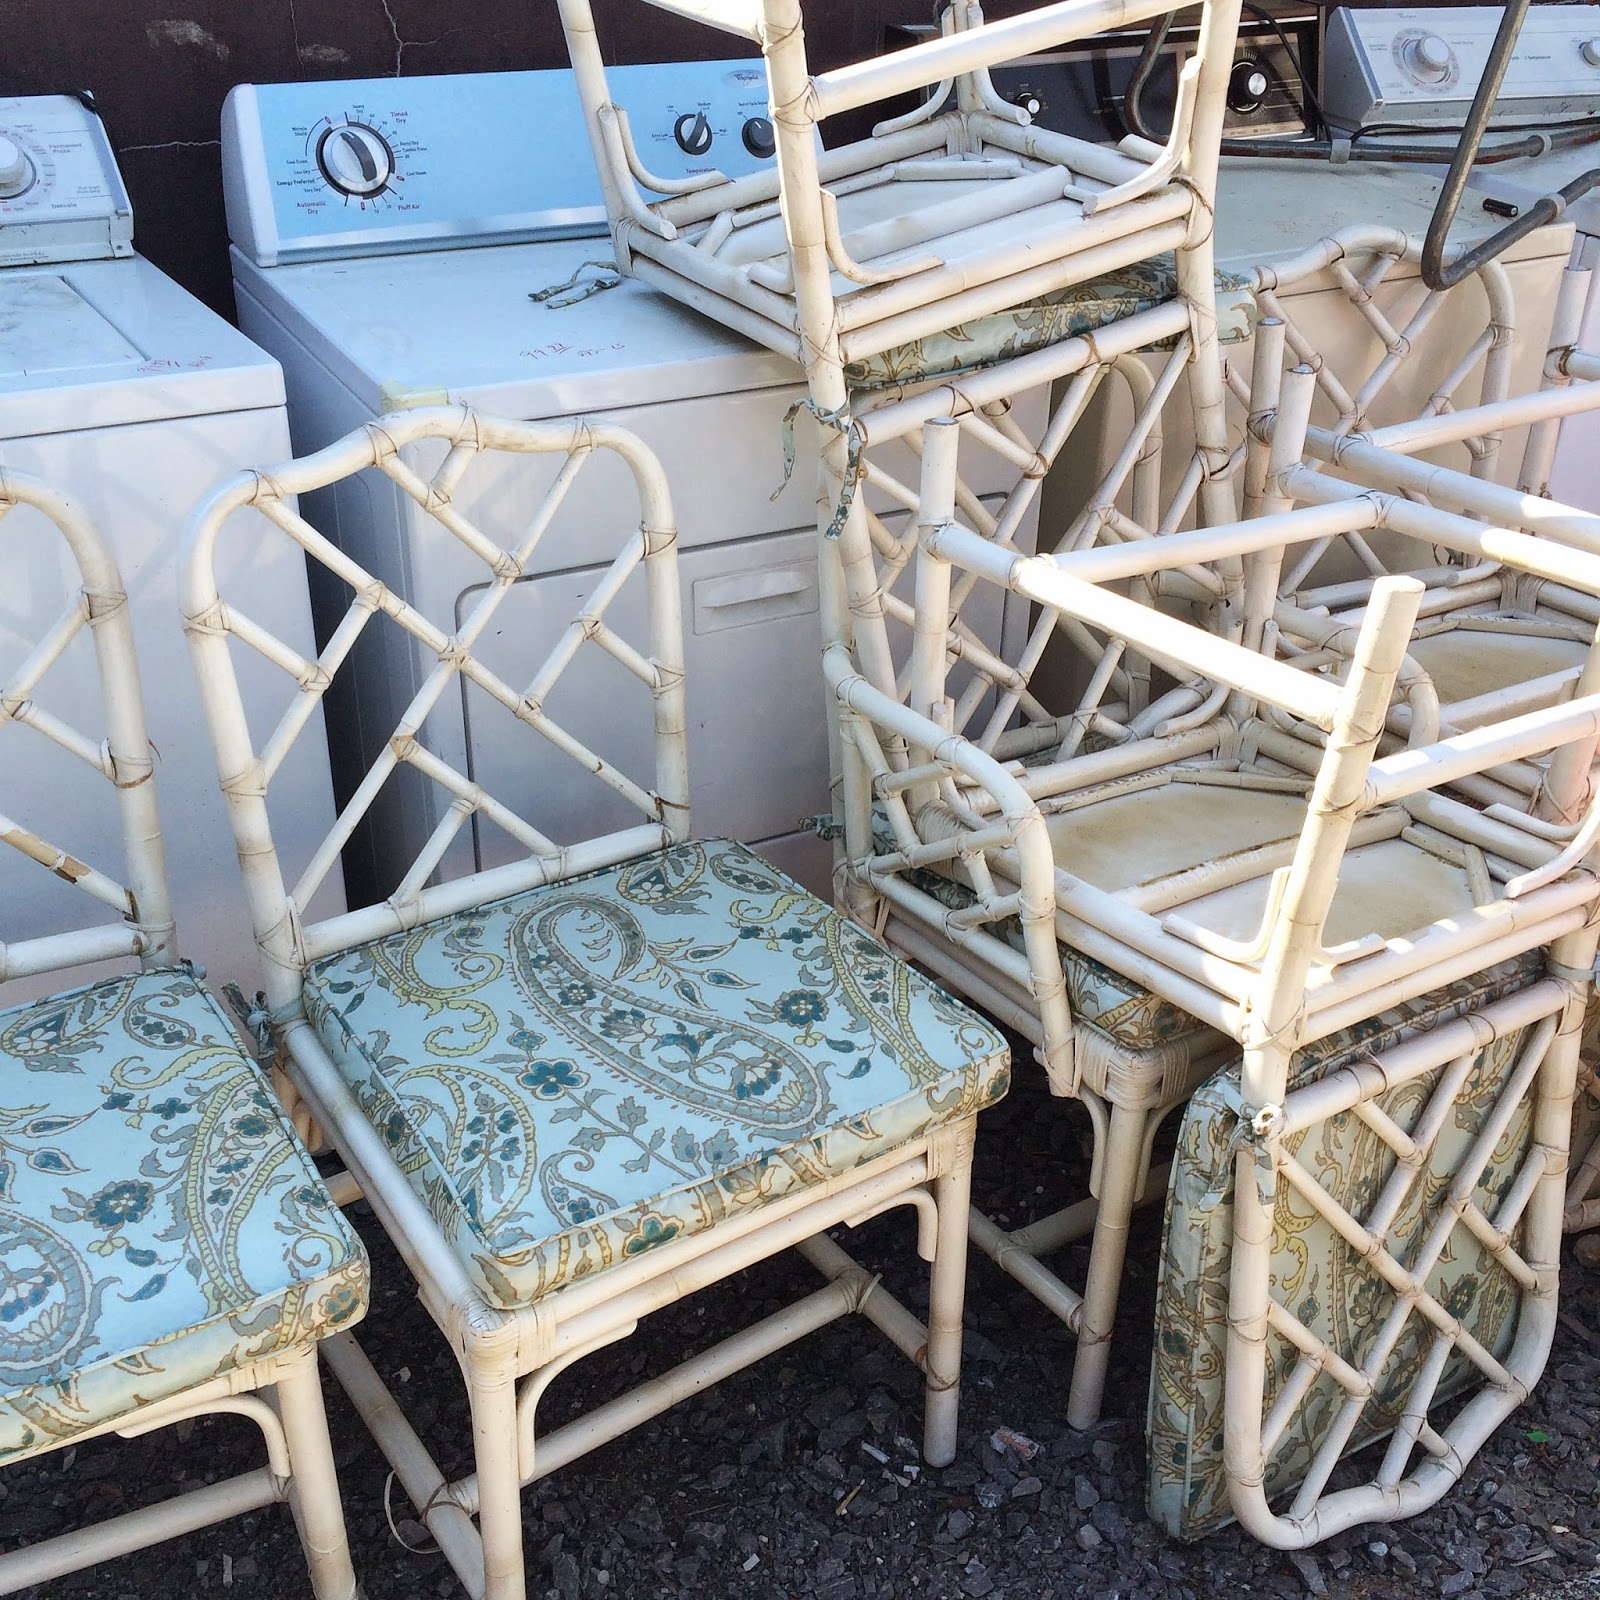 Chinese Chippendale Chairs Chair Covers For Wedding Reception Life With A Dash Of Whimsy Thrift Store Find